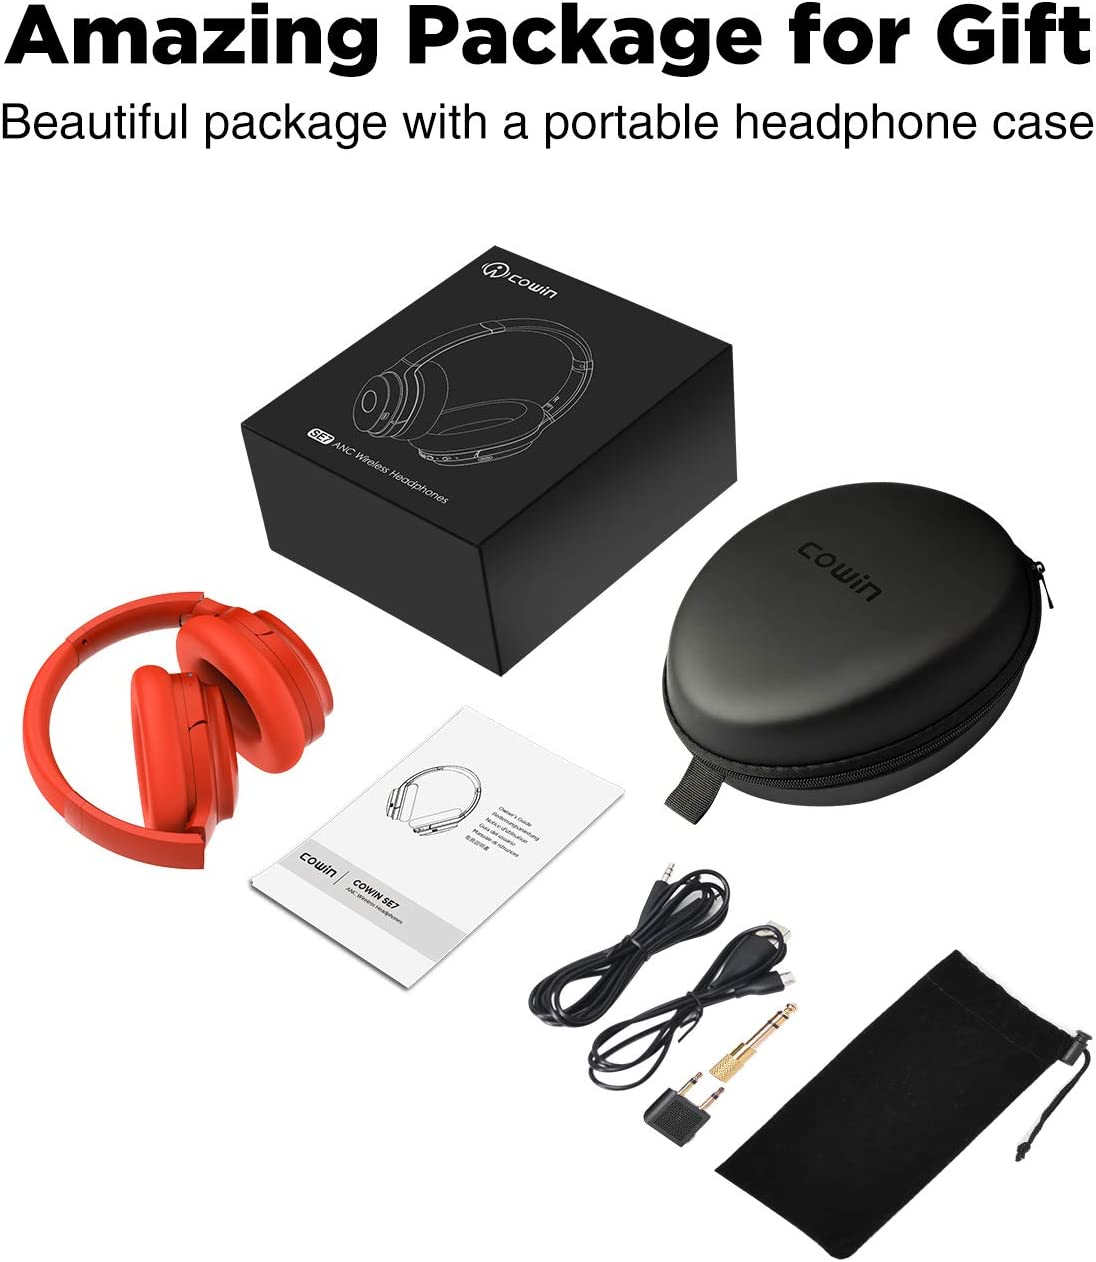 cowin SE7 Active Noise Cancelling Headphones Bluetooth Headphones Wireless Headphones Over Ear with Mic Aptx Comfortable Protein Earpads 50H Playtime Foldable Headphones for Travel Work Wine